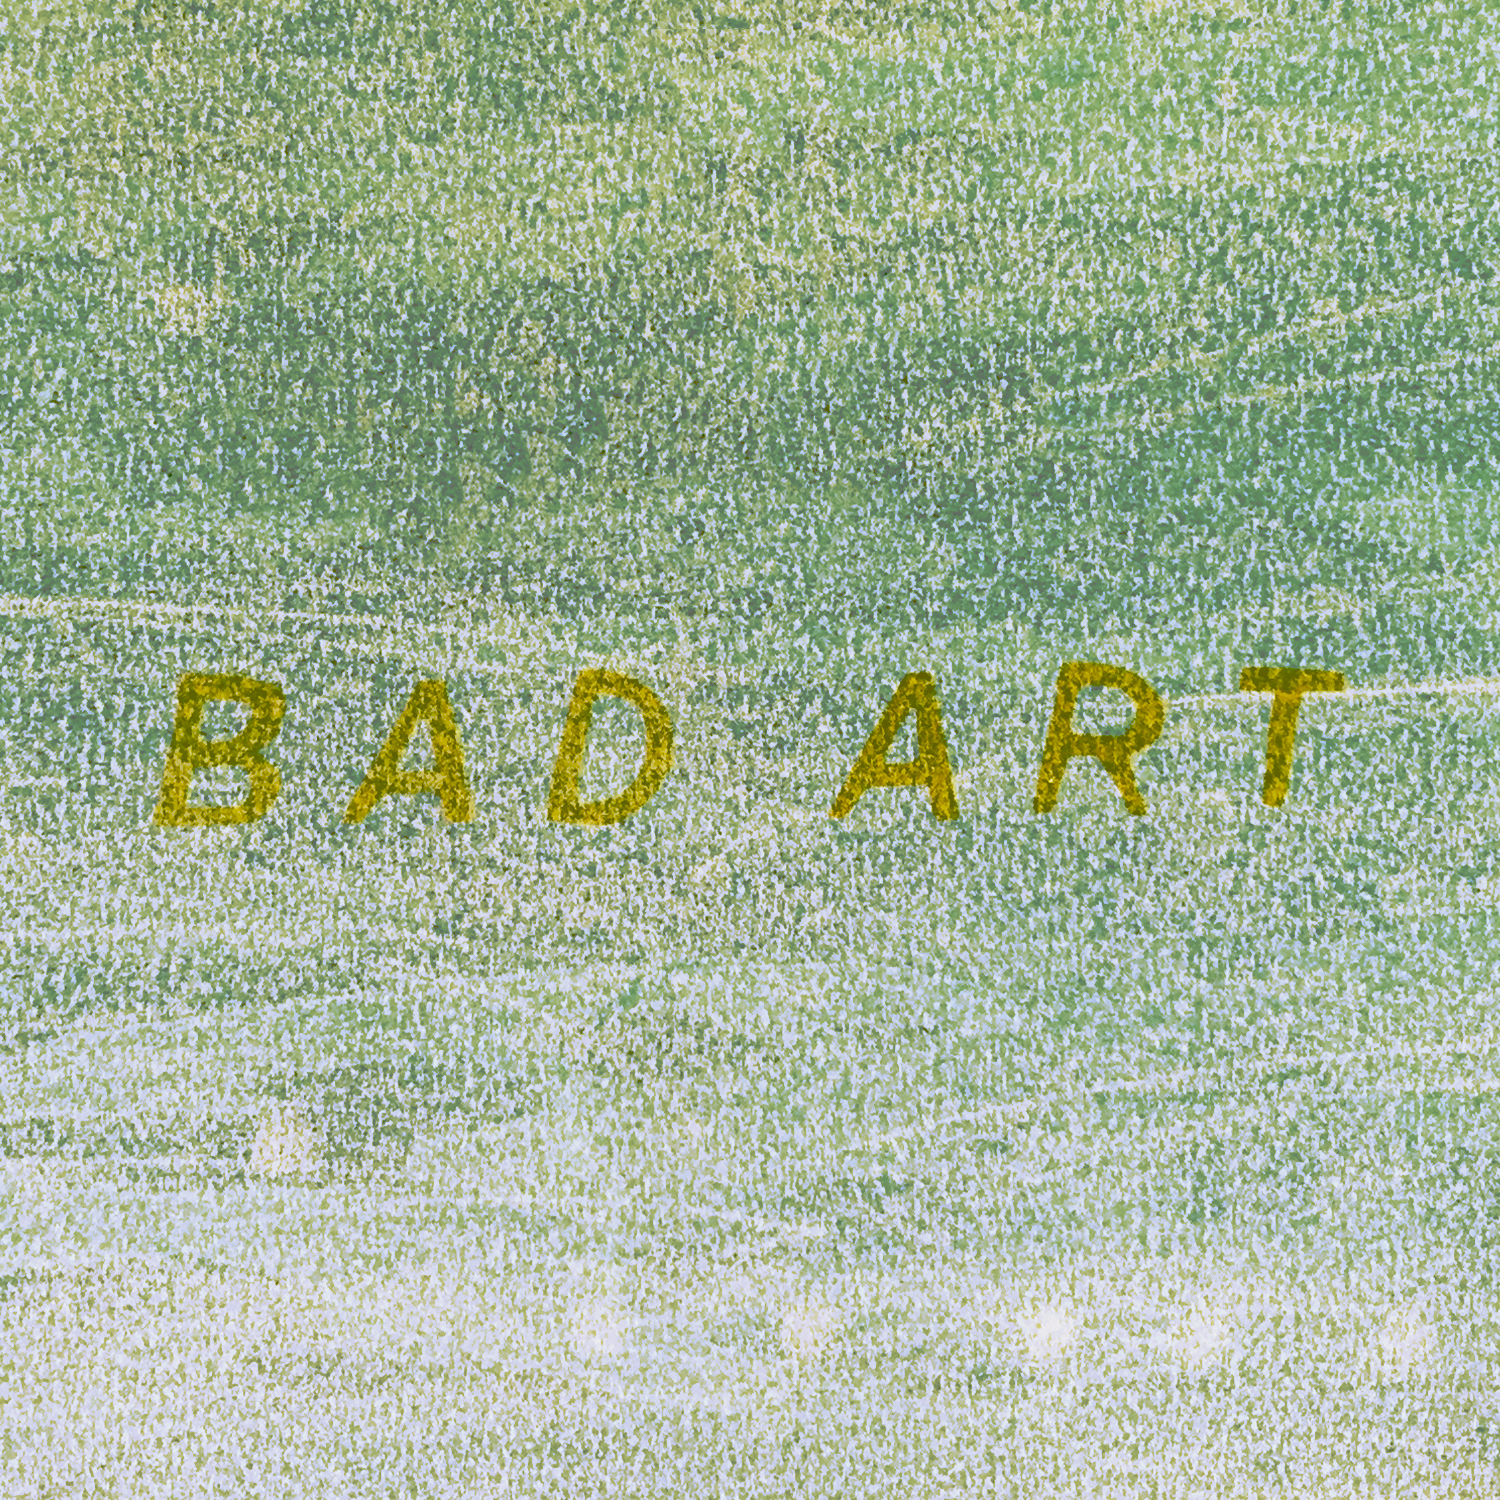 Bad Art III:Rhythm and Sound from Tuesday Night - 2019.